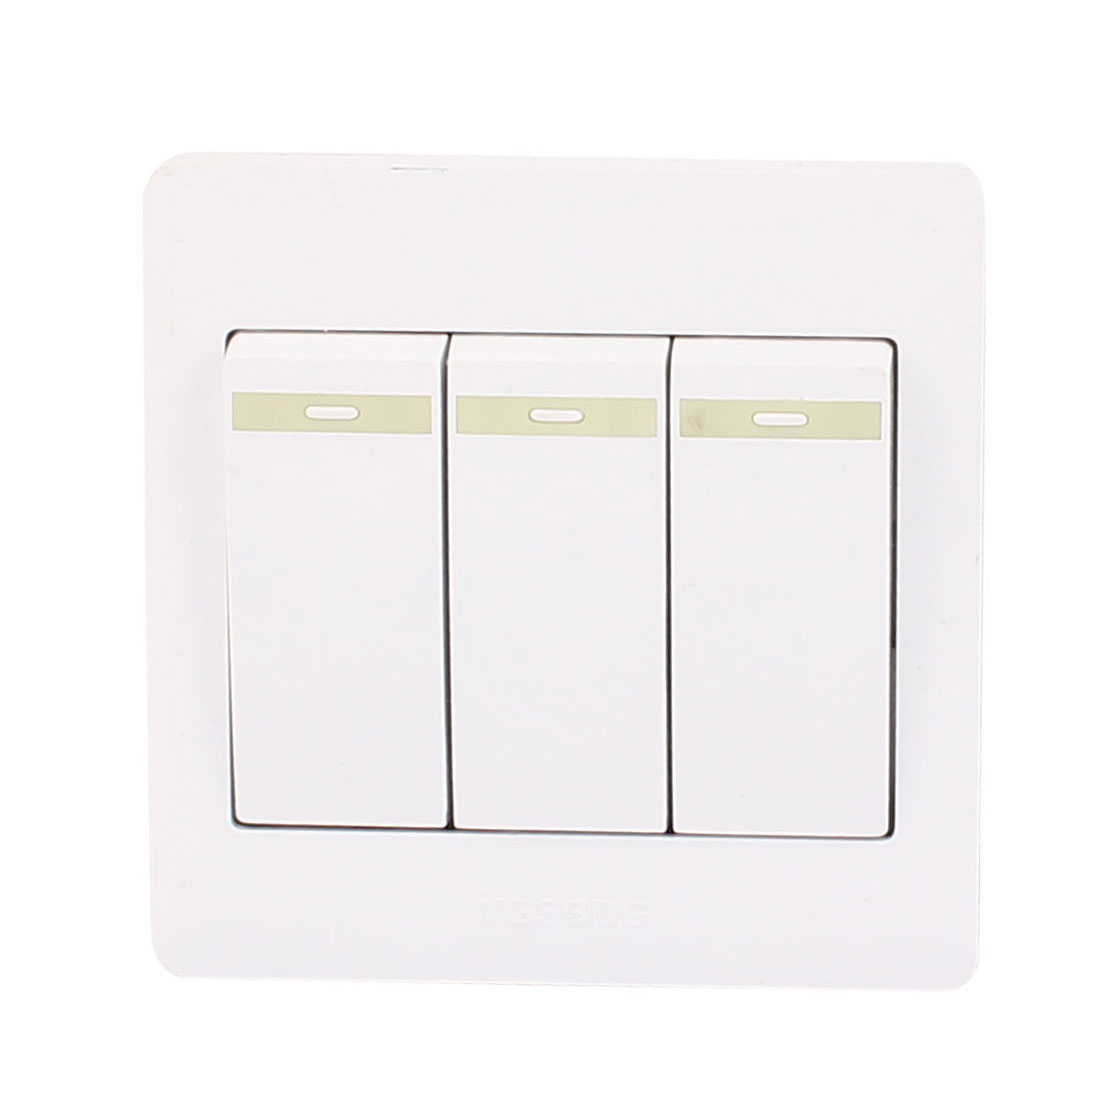 AC 250V 10A 3 Gang 1 Way On/Off 86Type Plastic Housing Wall Light Switch